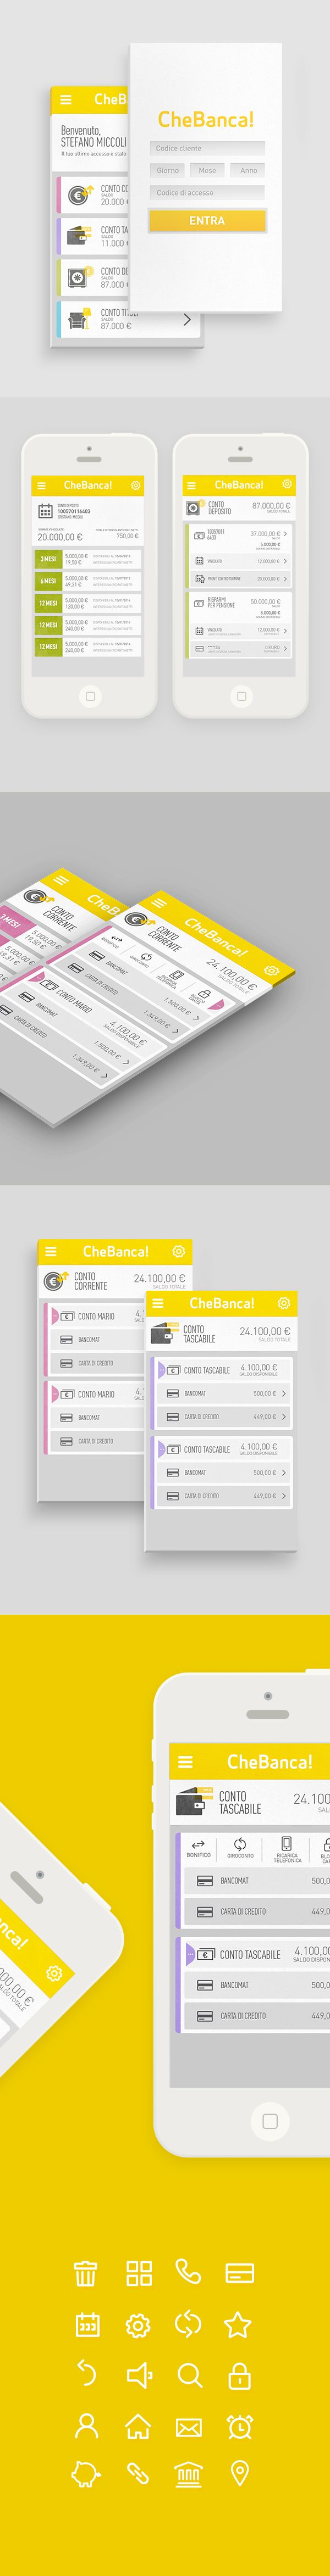 Banking App by LUMEN BIGOTT, via Behance